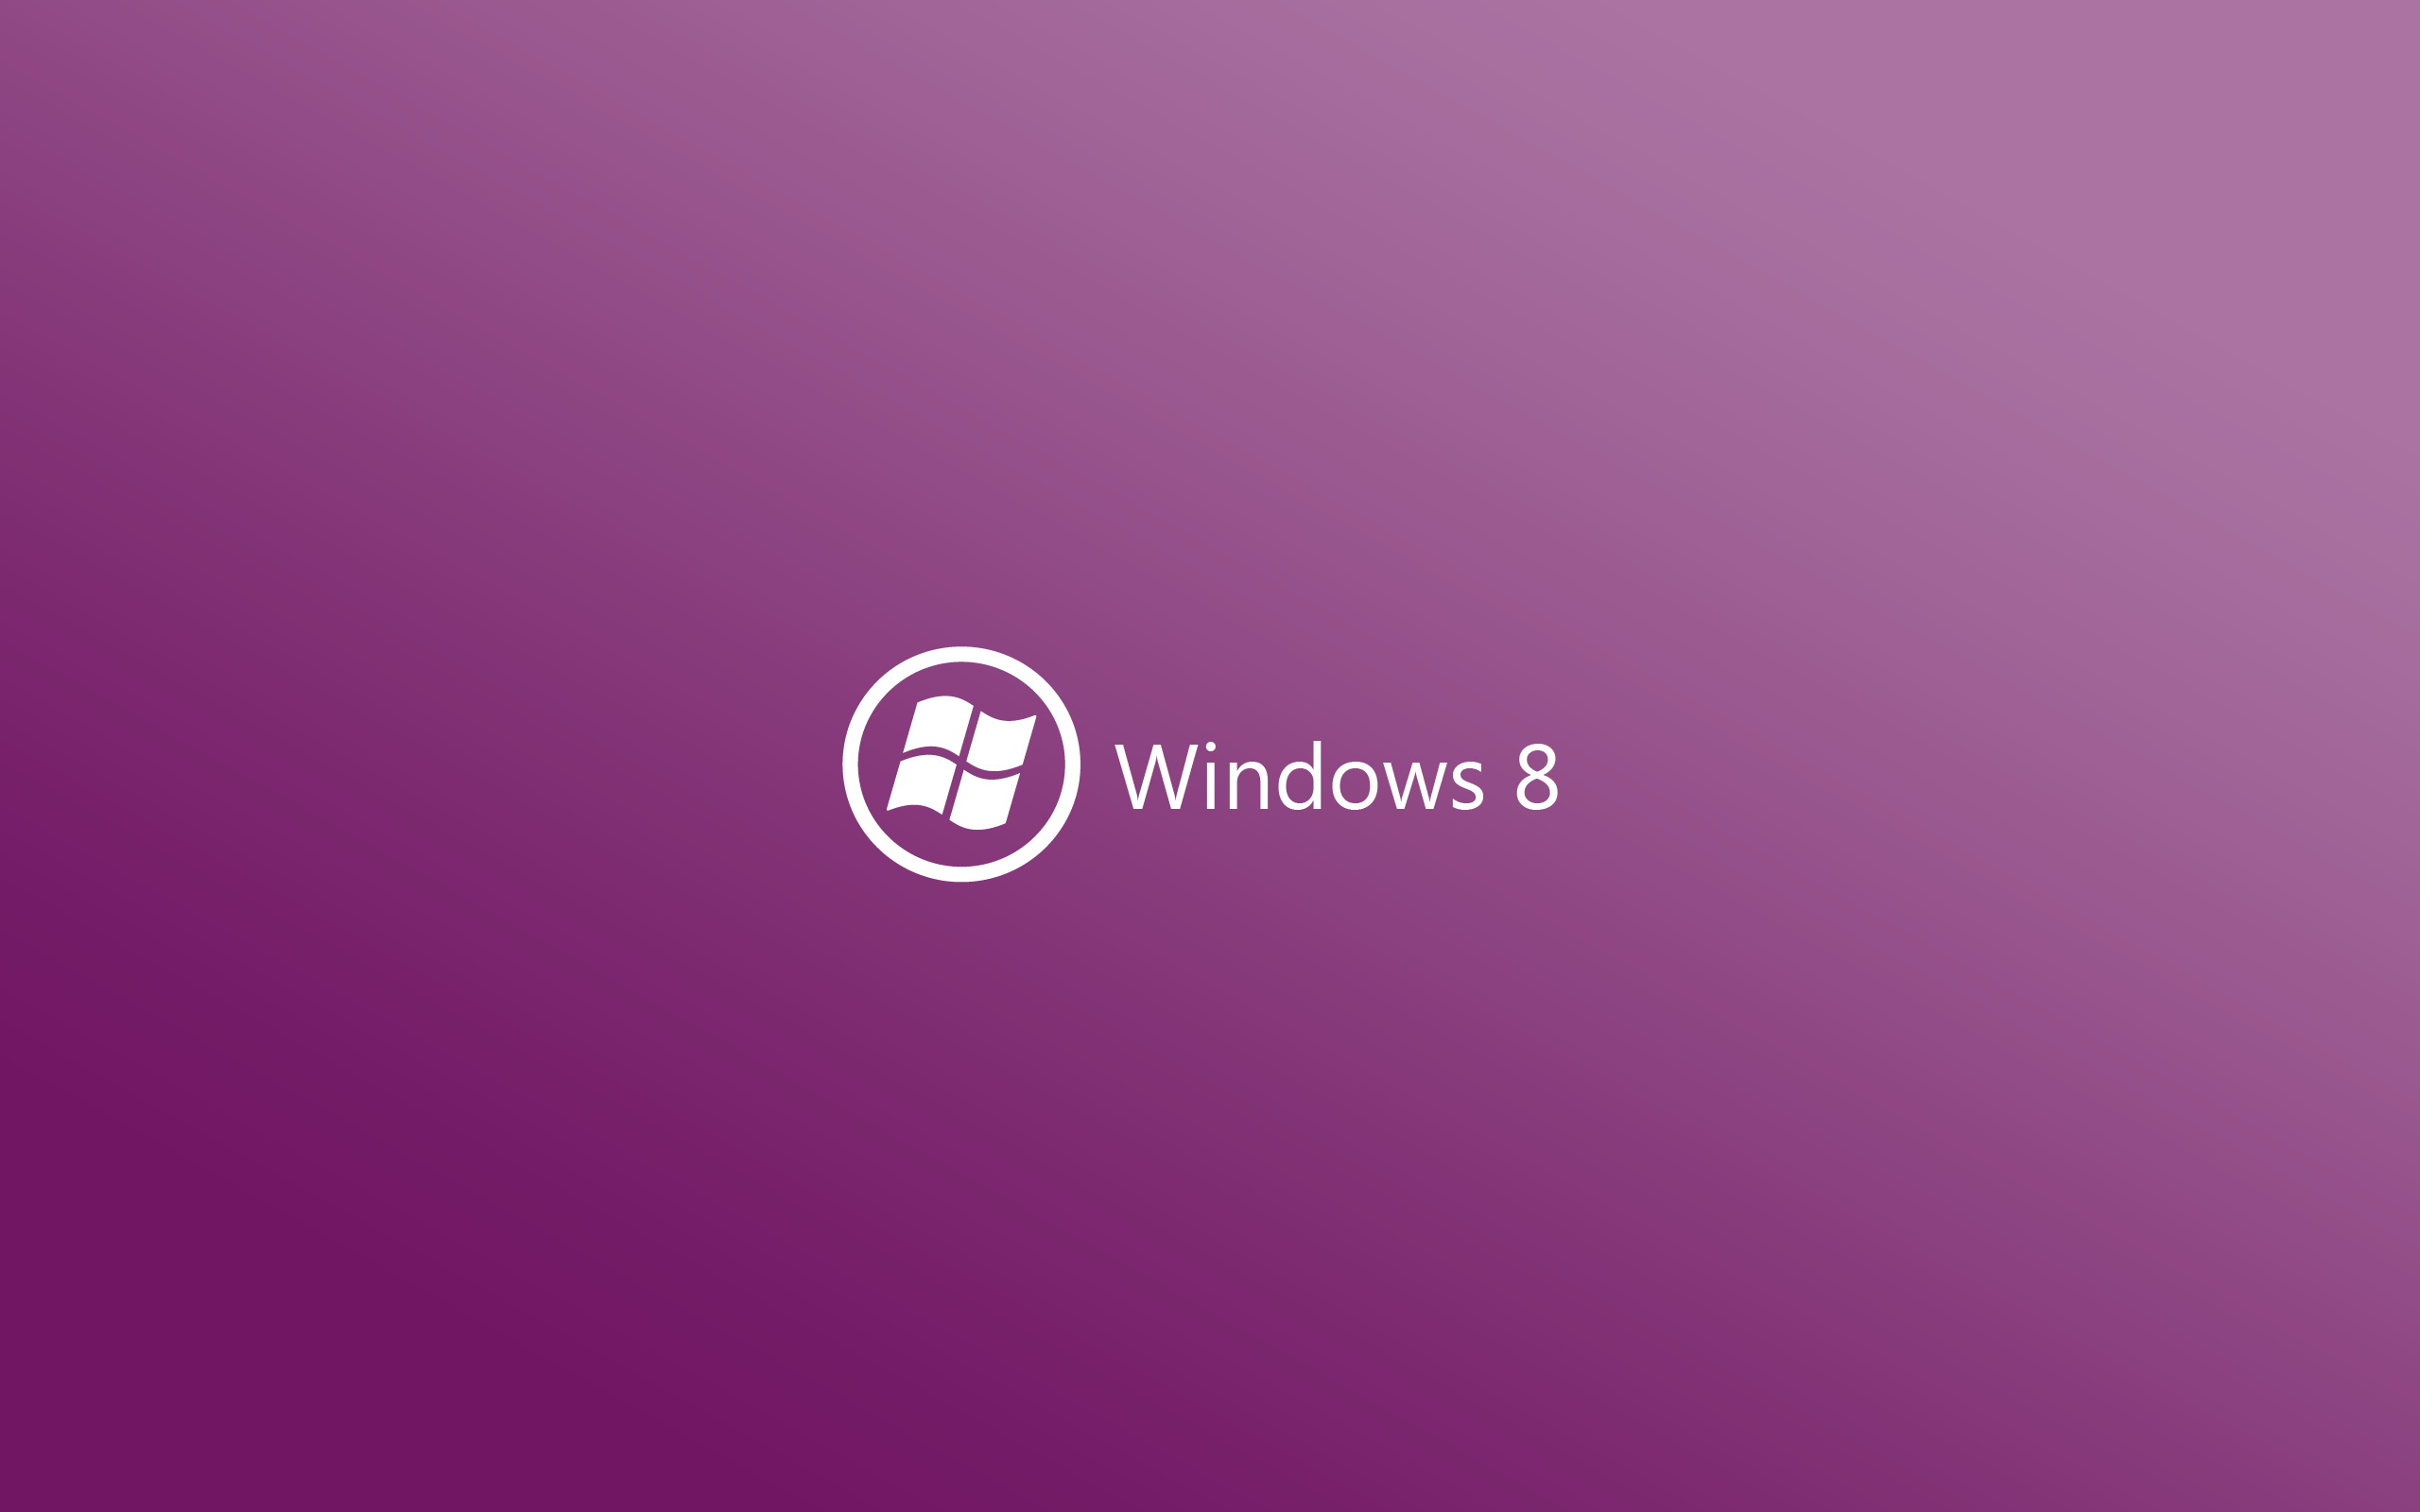 windows 81 hd wallpapers - sf wallpaper